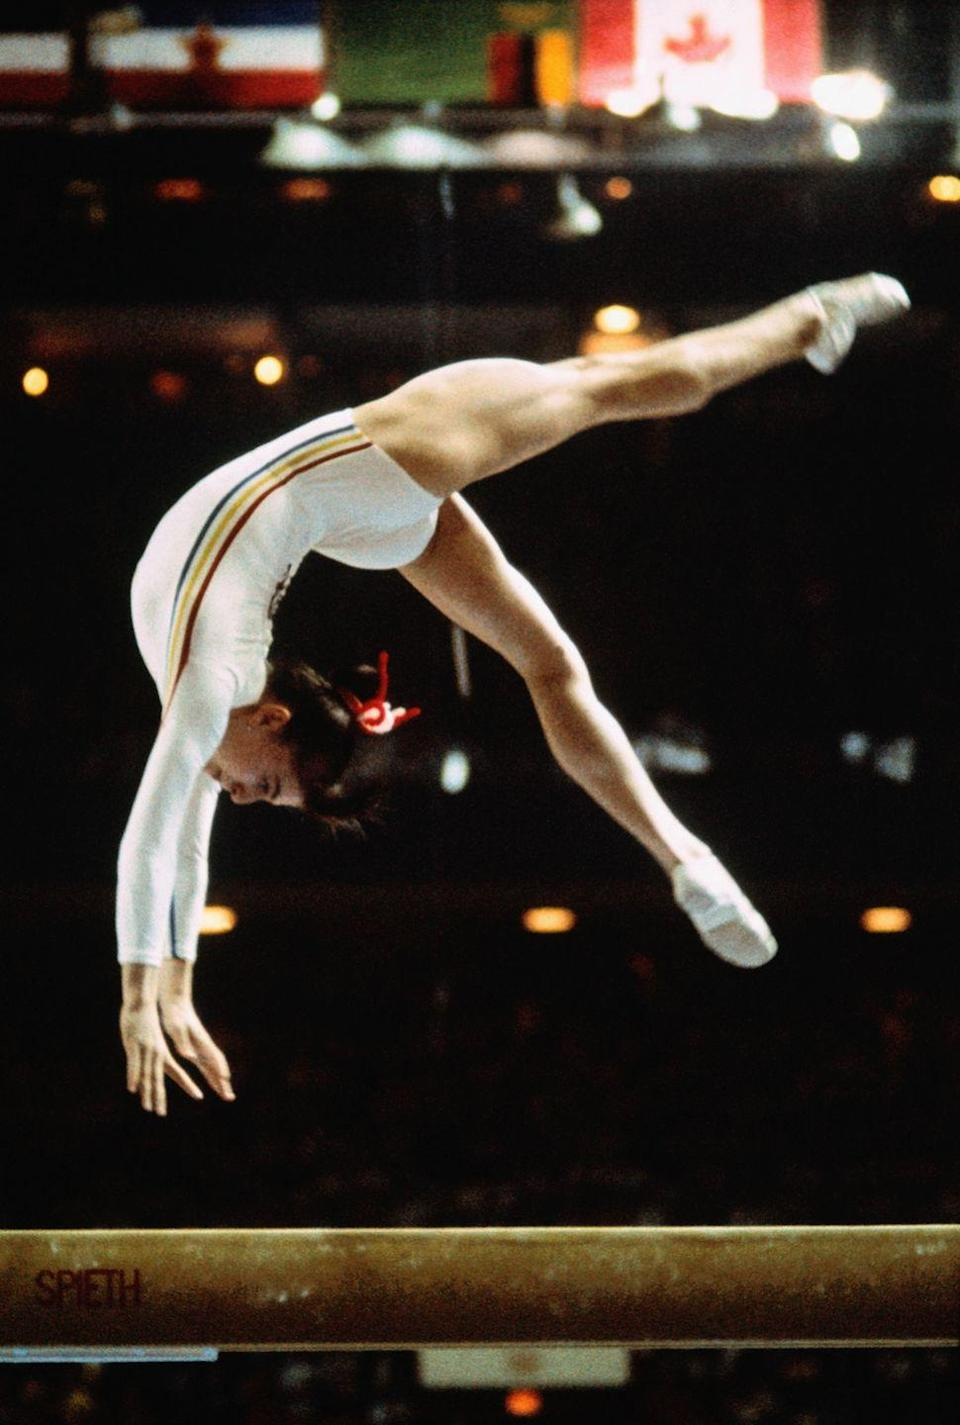 """<p>At just 14 years old, Nadia Comăneci took home the gold medal for her routine on the uneven bars. However, it was her <a href=""""https://olympics.com/en/video/first-perfect-ten-nadia-comaneci#:~:text=In%201976%20in%20Montreal%2C%20Romanian,performance%20on%20the%20uneven%20bars."""" rel=""""nofollow noopener"""" target=""""_blank"""" data-ylk=""""slk:score of 10.0"""" class=""""link rapid-noclick-resp"""">score of 10.0</a> that caught people's attention. The Romanian athlete became the first gymnast in Olympic history to receive a perfect score. </p>"""